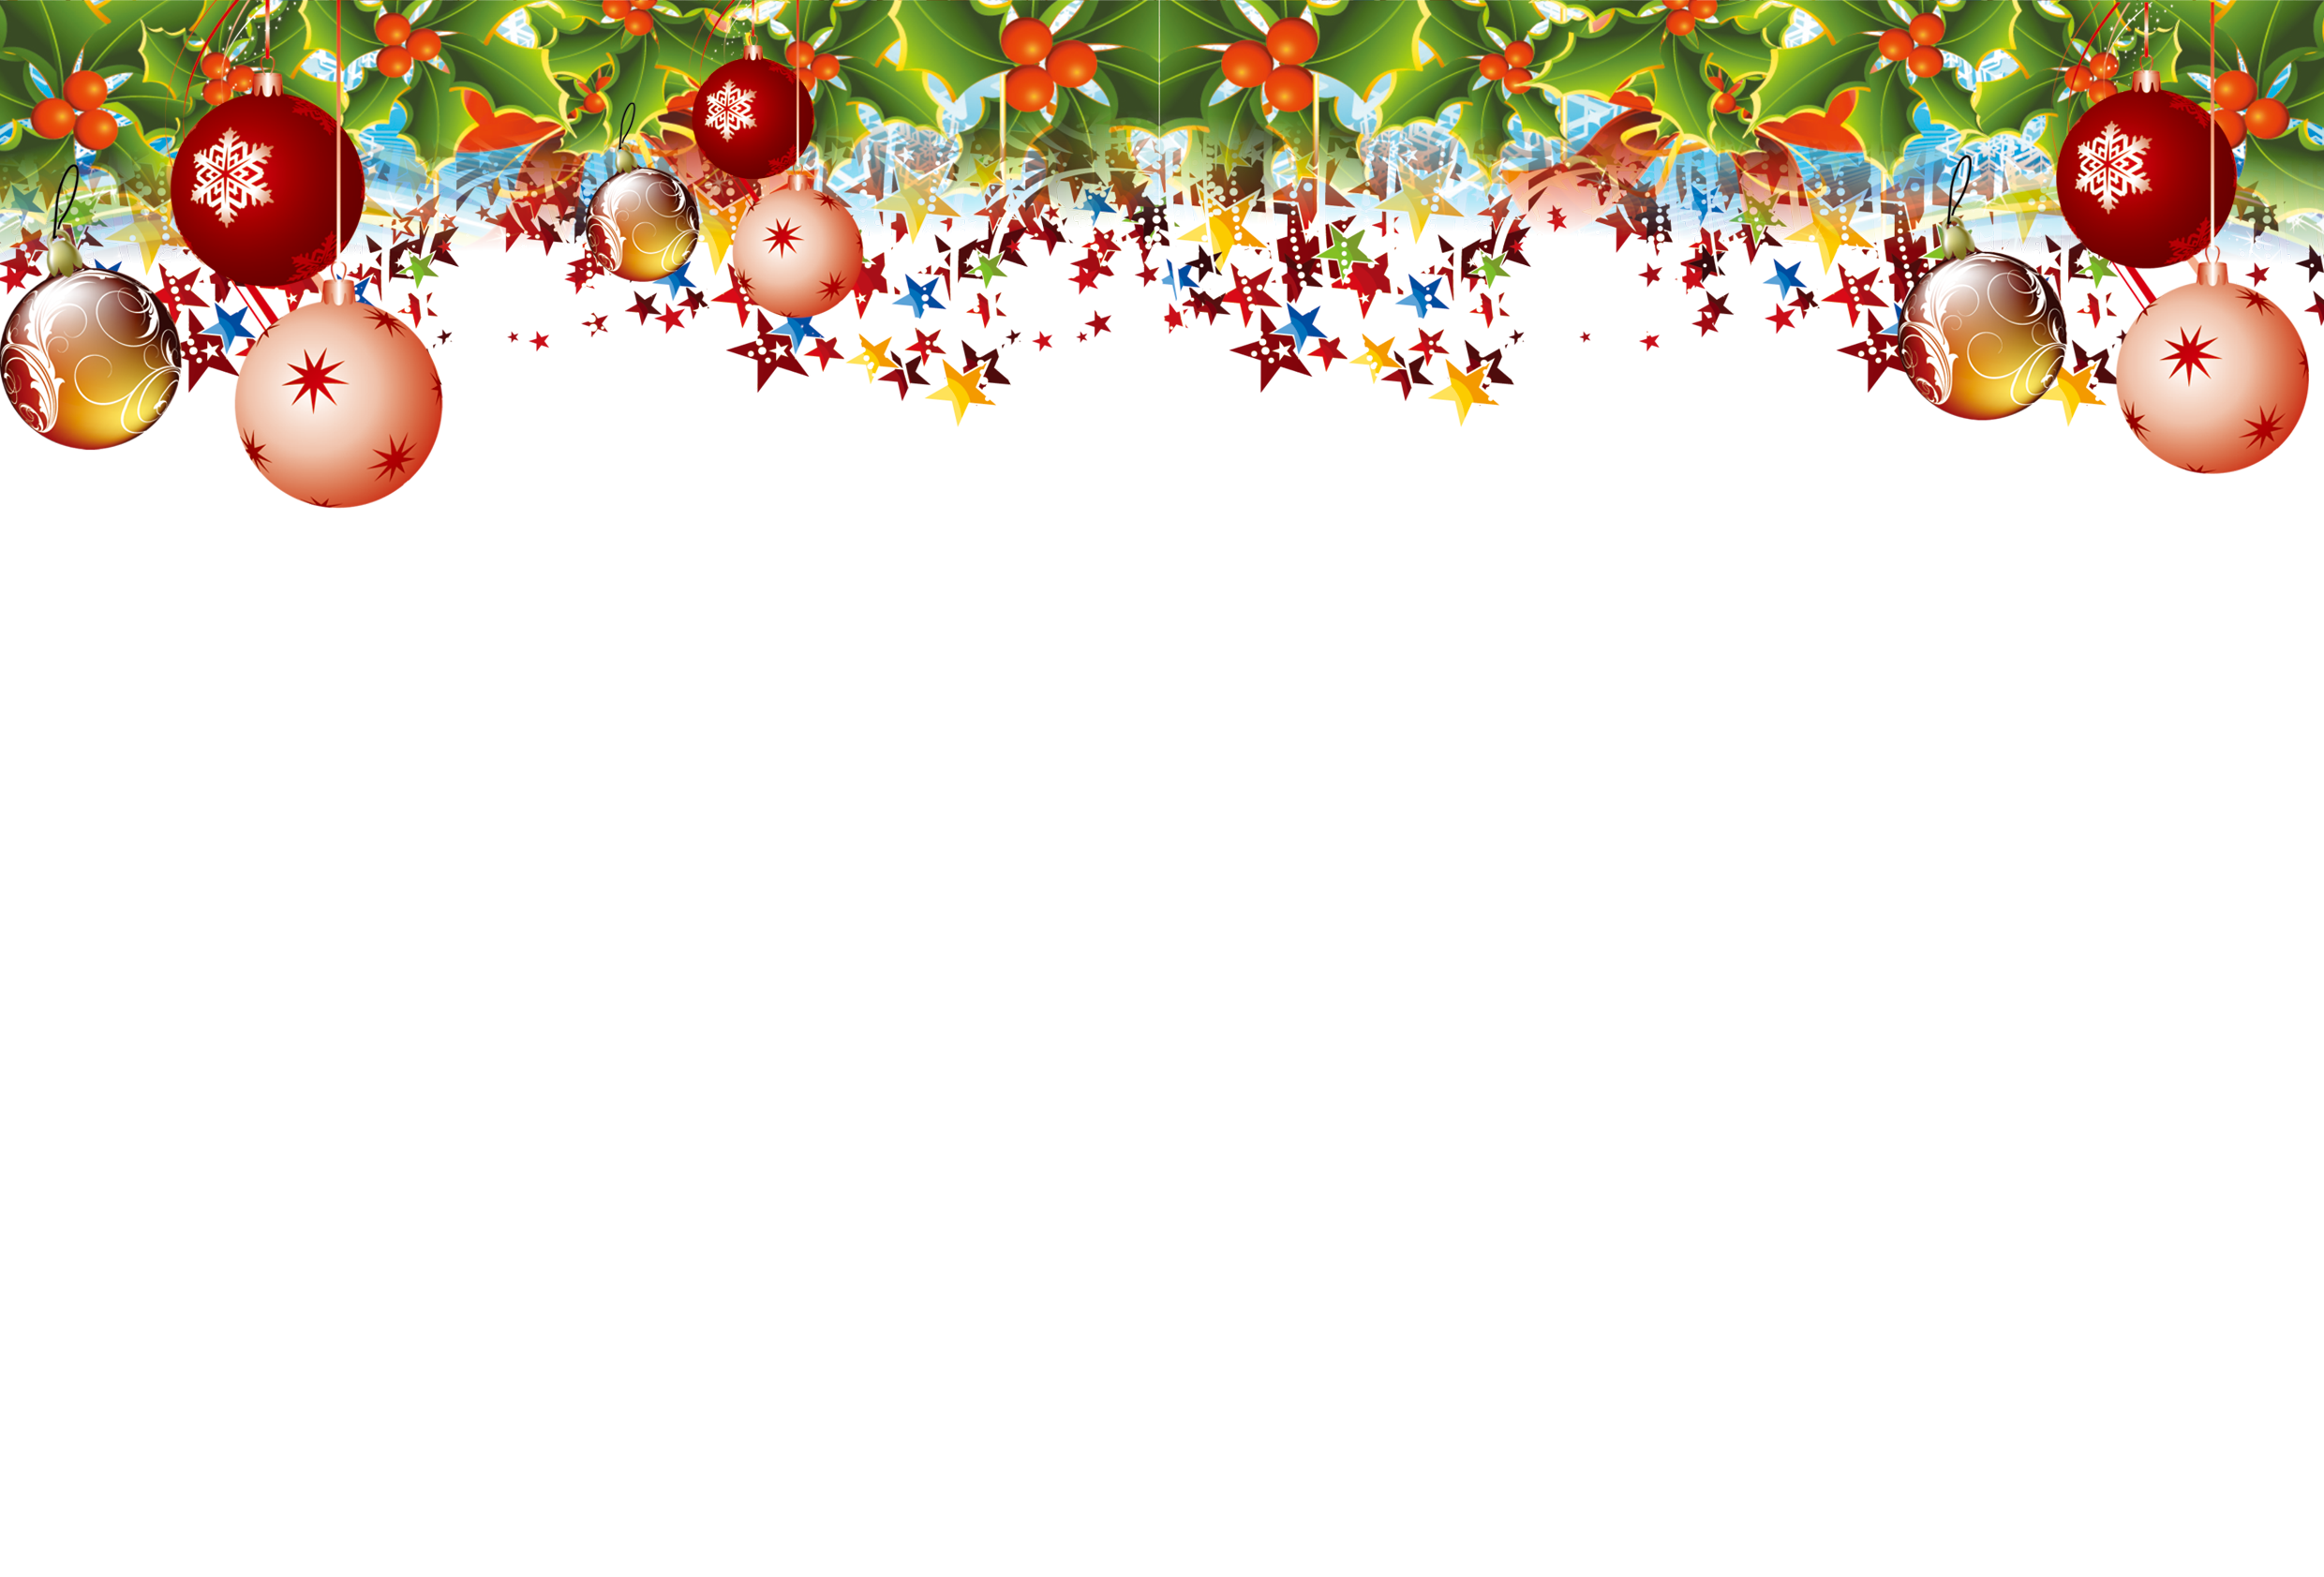 Pretty Christmas Backgrounds Png & Free Pretty Christmas Backgrounds.png Transparent Image